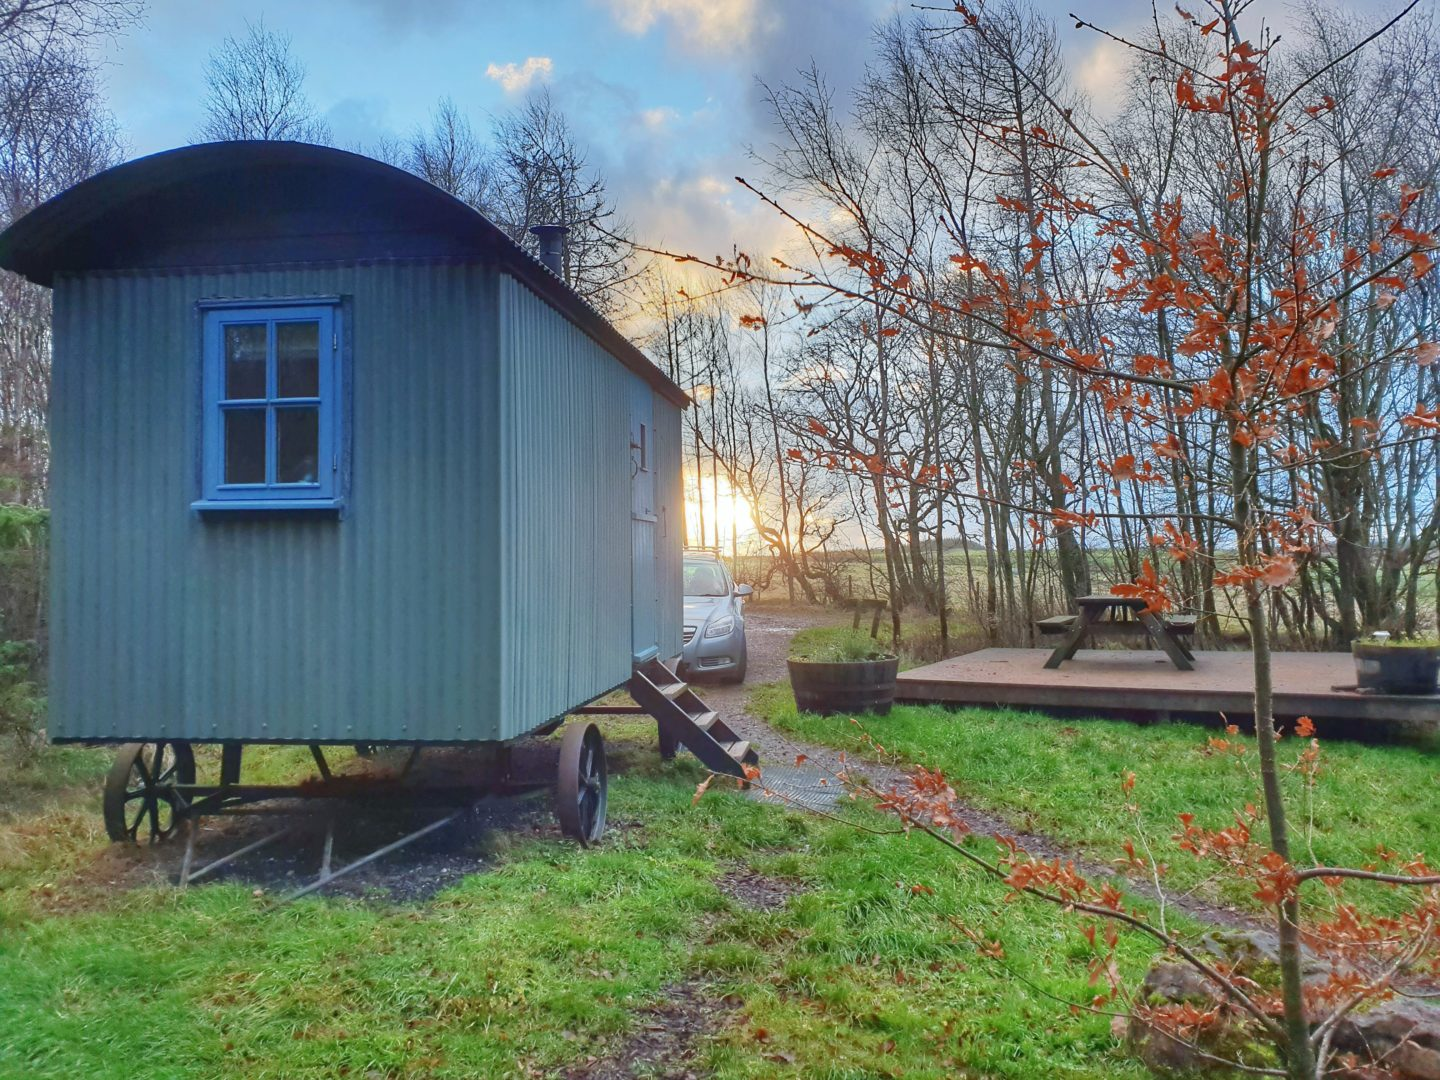 Blencathra shepherds hut on Scales Plantation in the Lake District